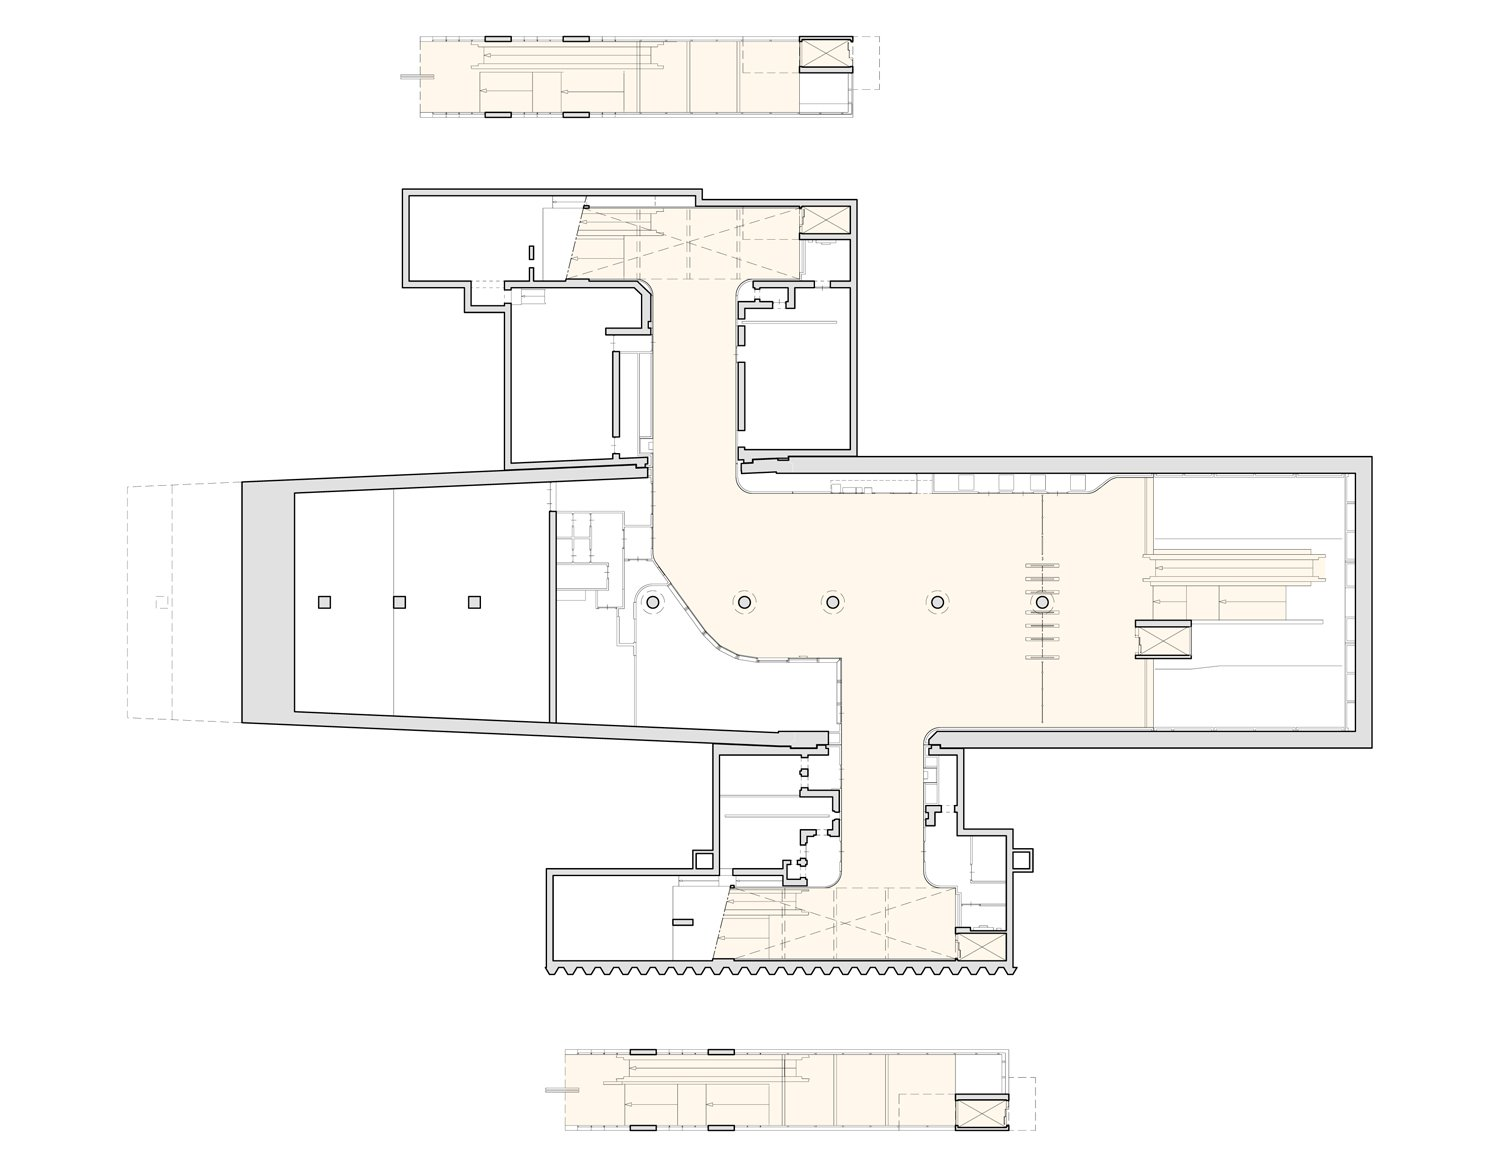 Floorplan Wibautstraat after renovation with improved passenger flow GROUP A}